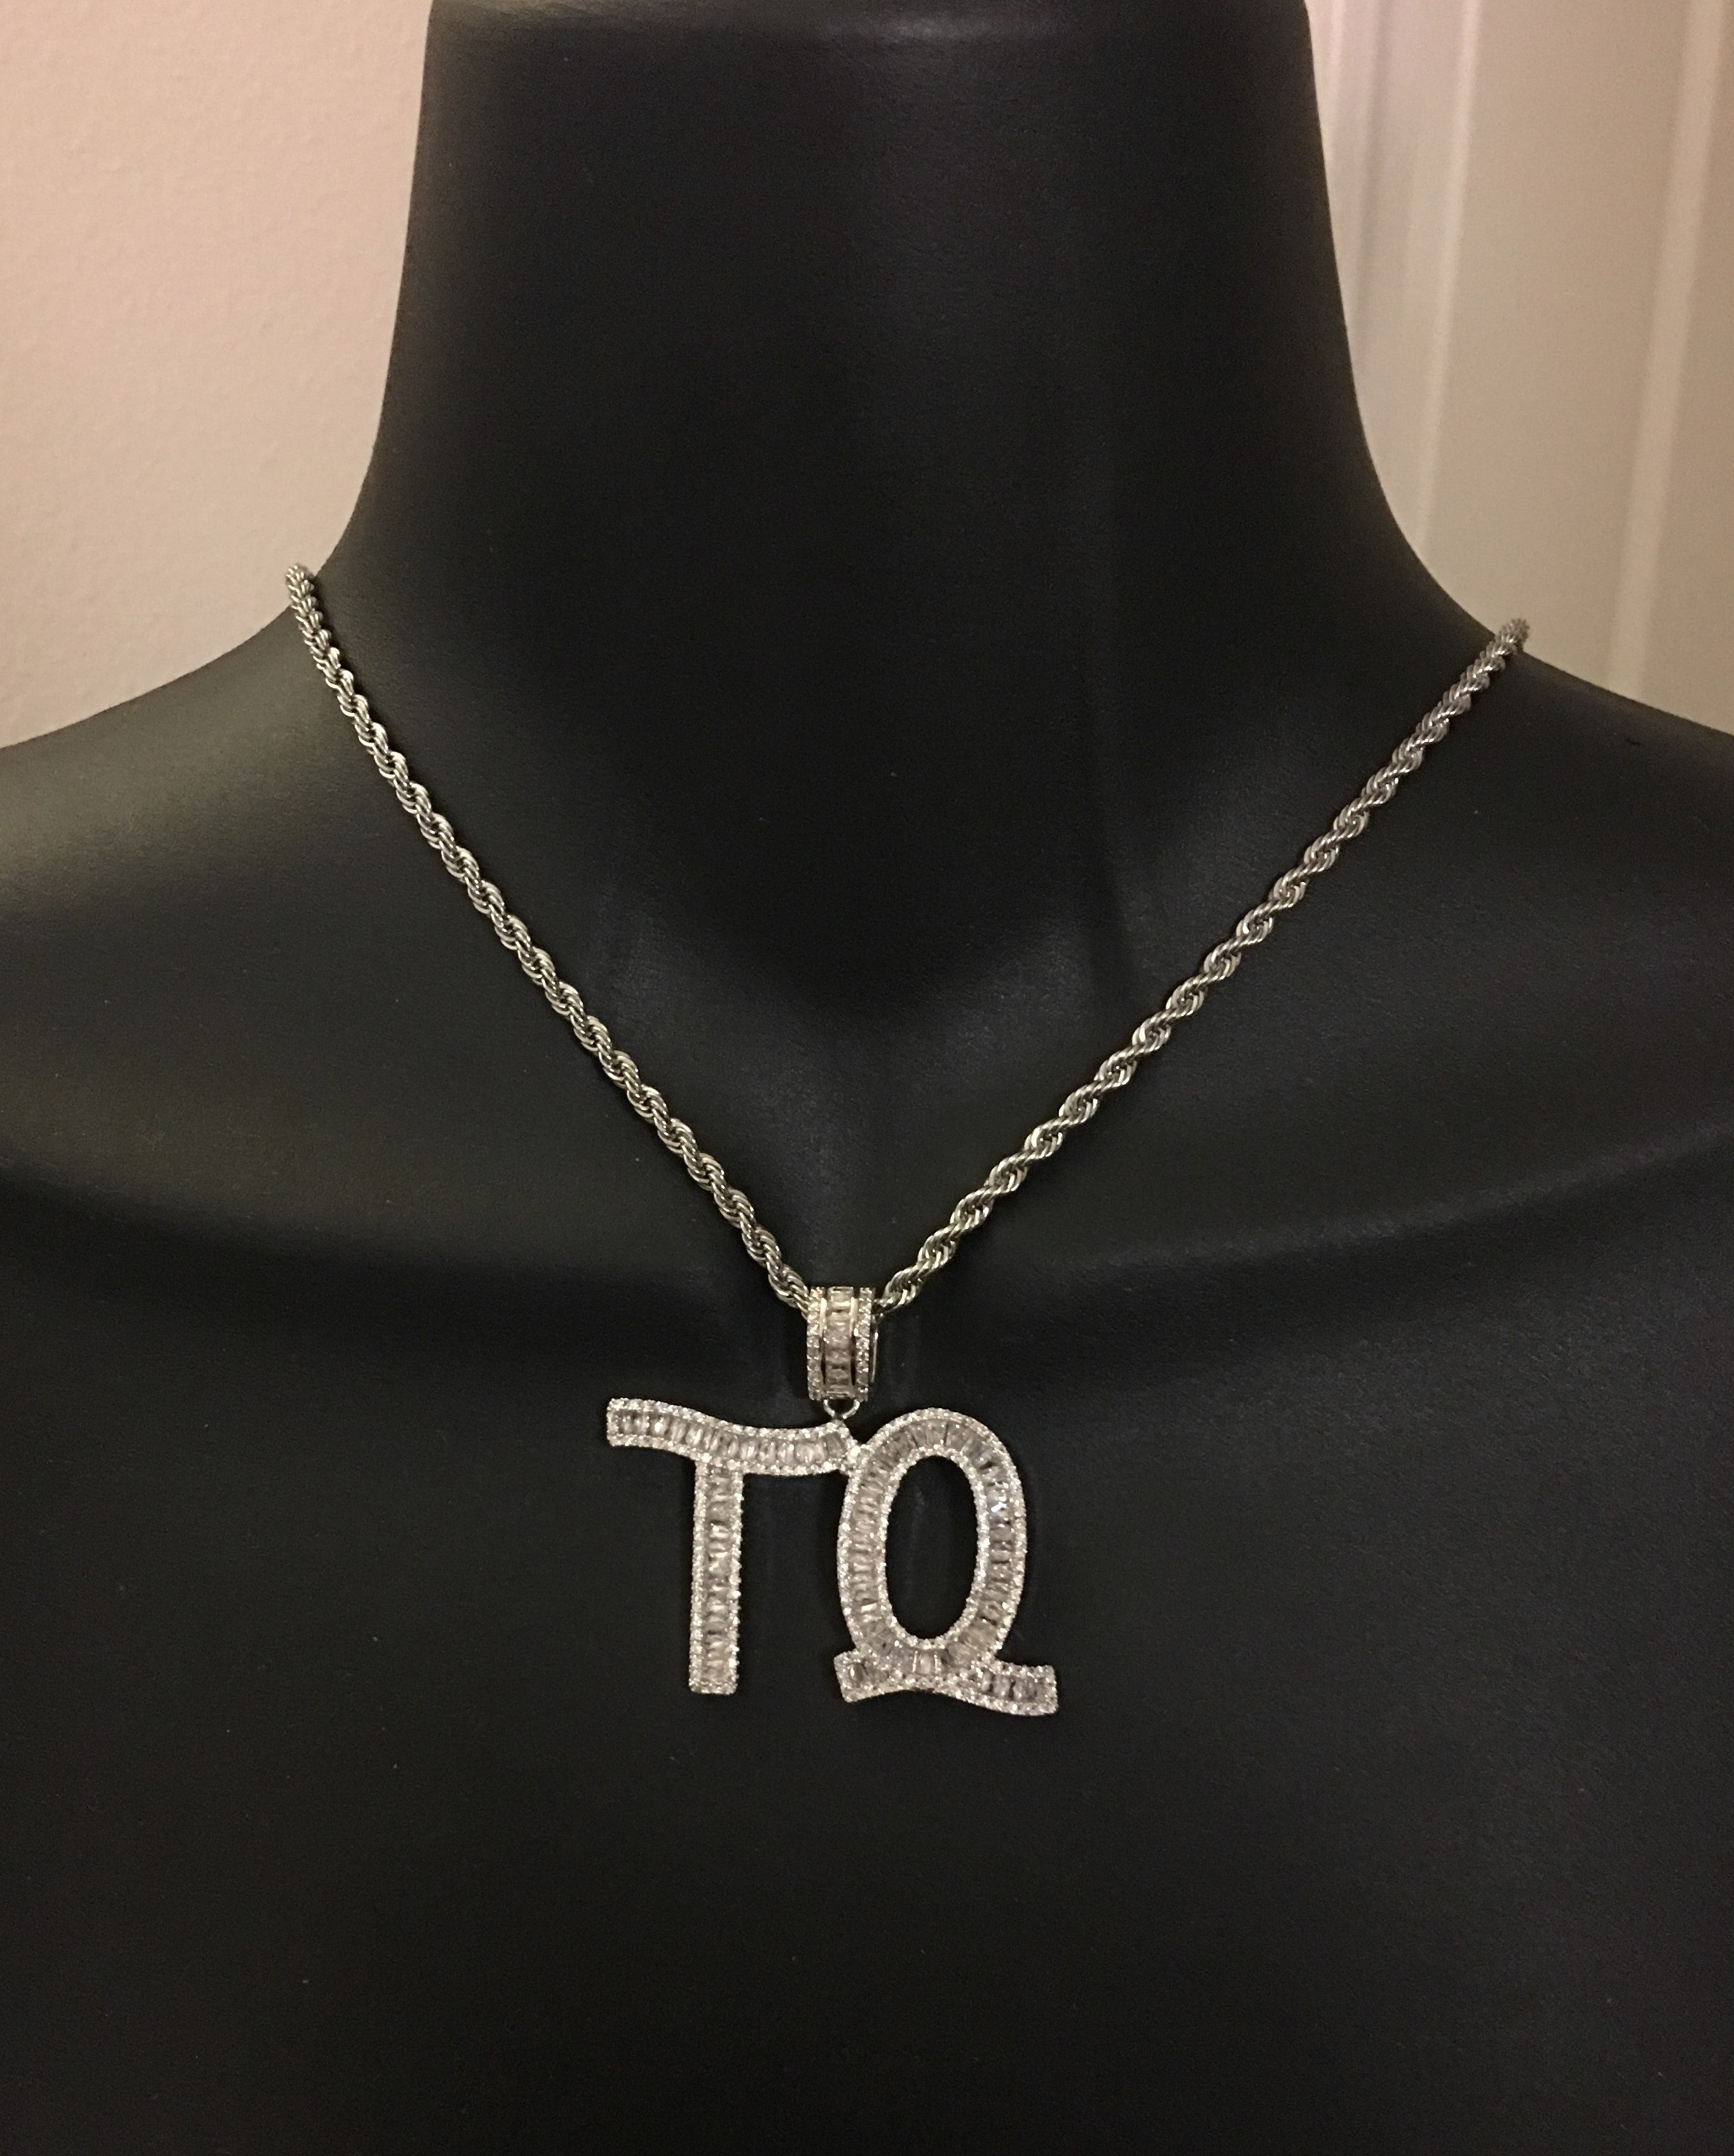 Personalized, diamond bling, initial or name necklace